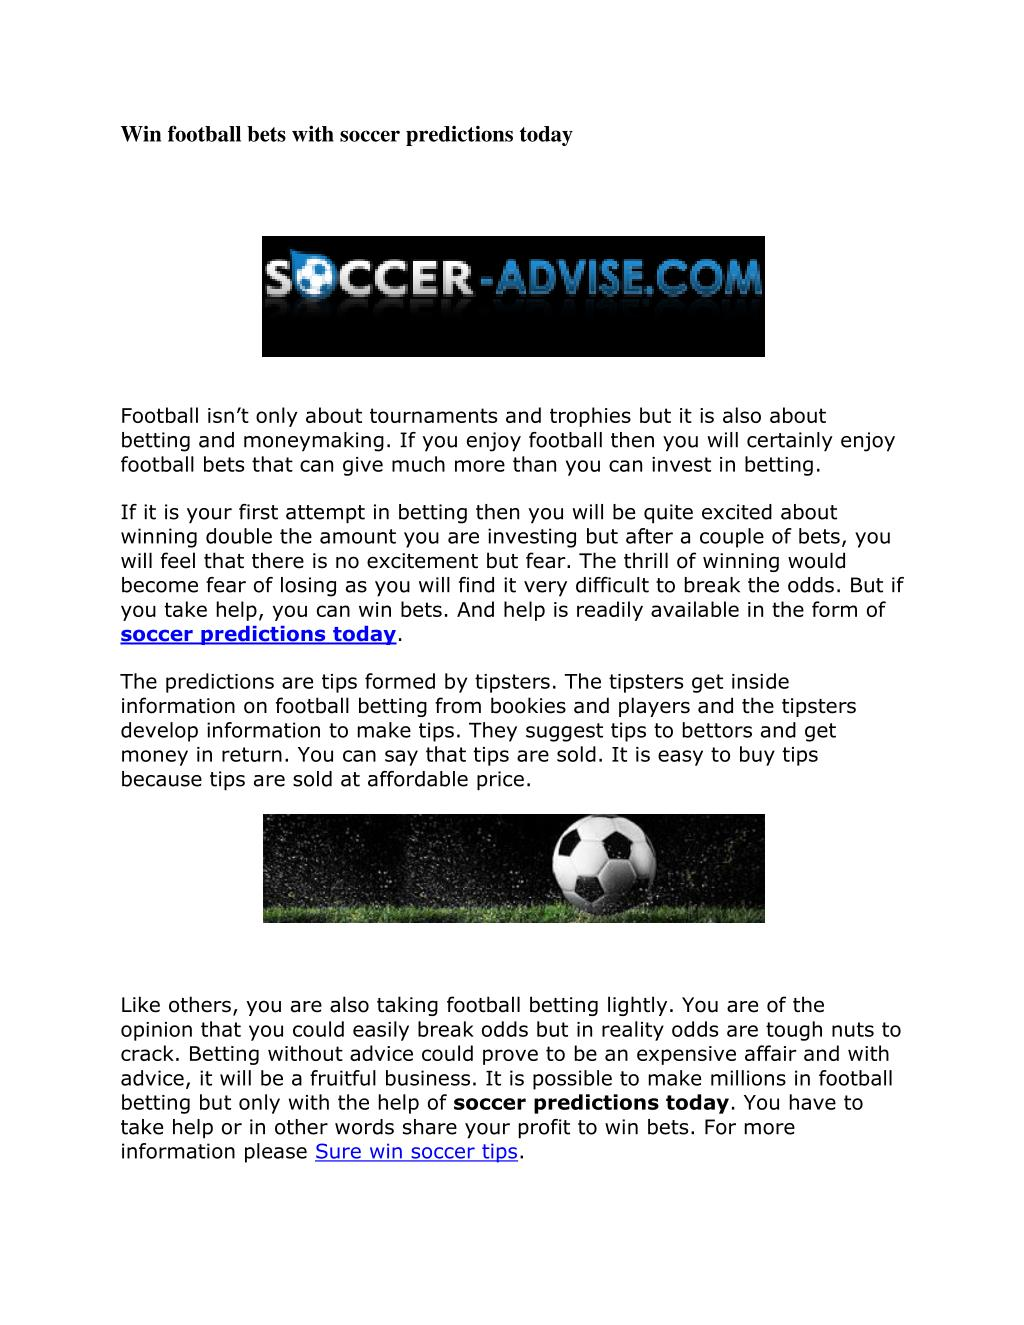 PPT - Win football bets with soccer predictions today